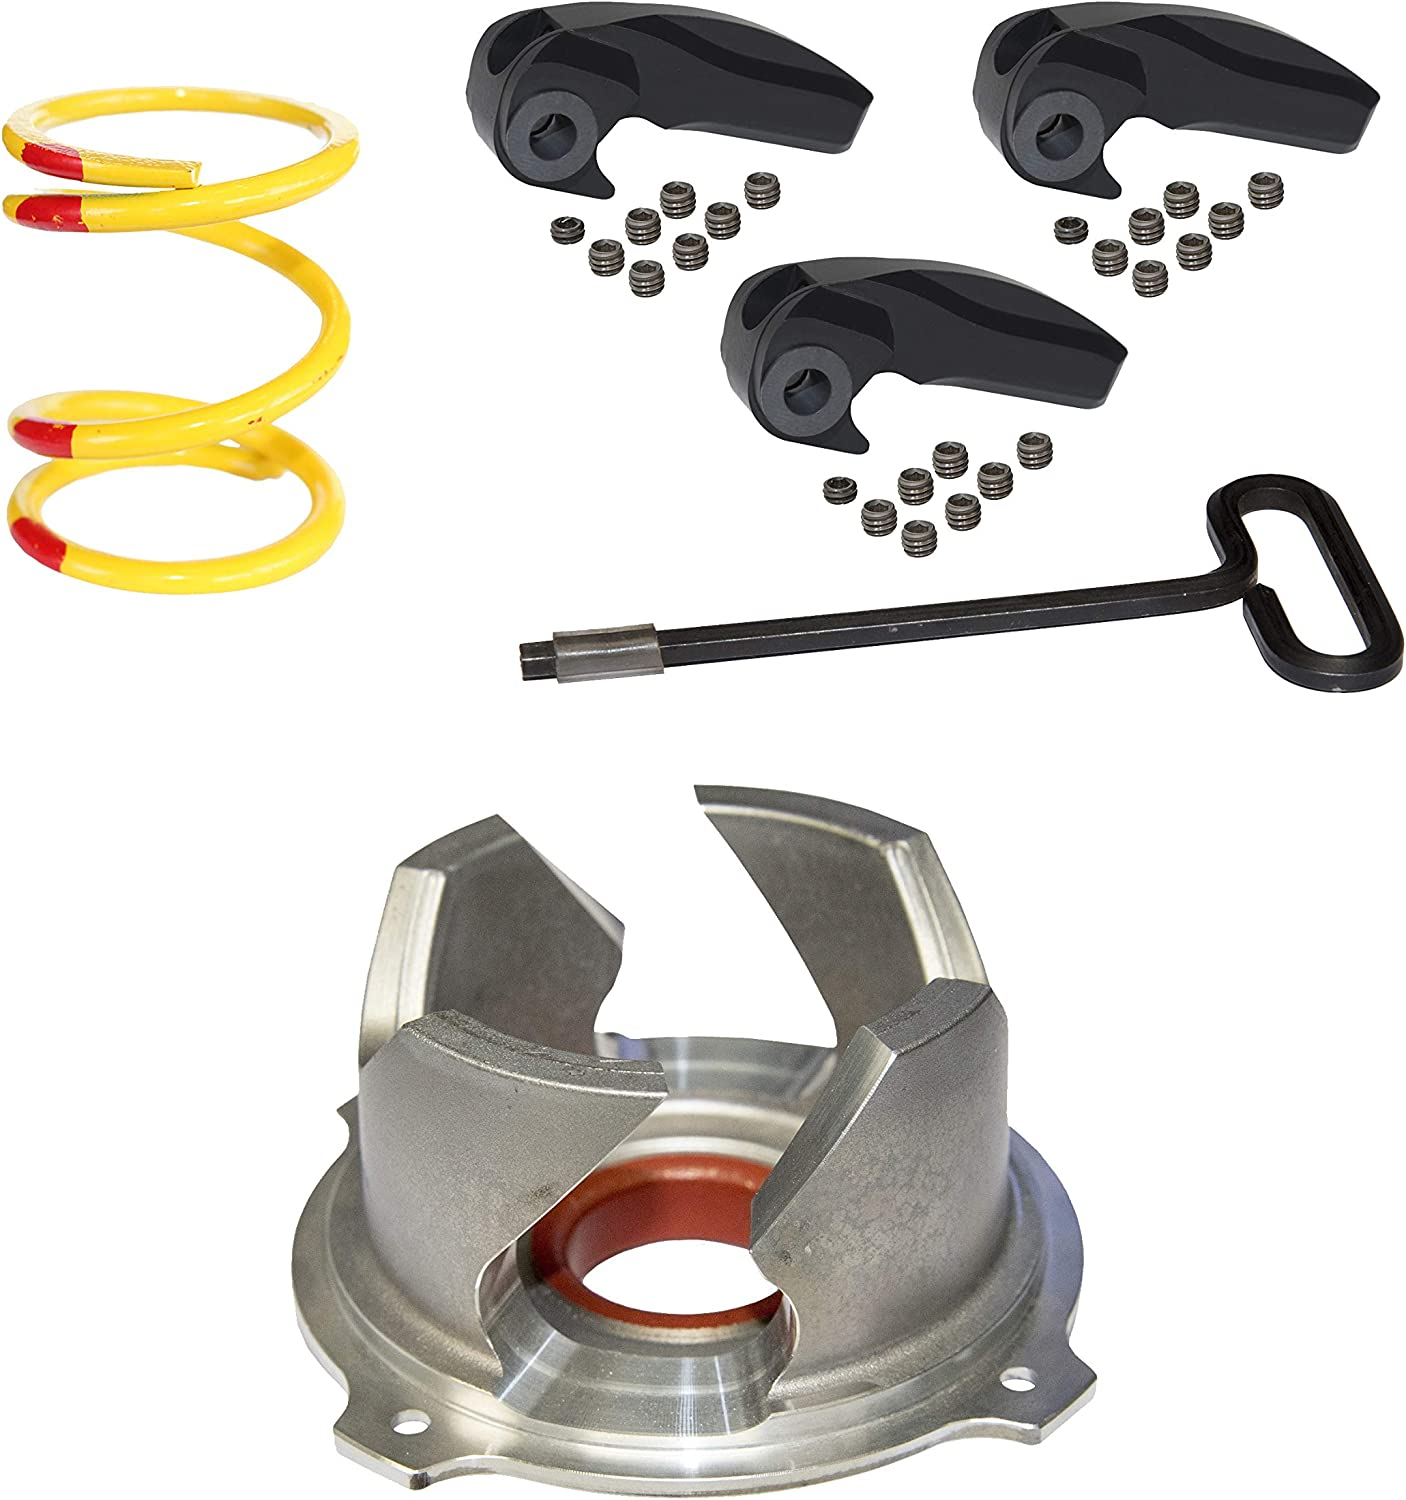 0-4500 Starting Line ProductsSLP 41-877 High Load Clutch Kit for Polaris RZR XP 1000